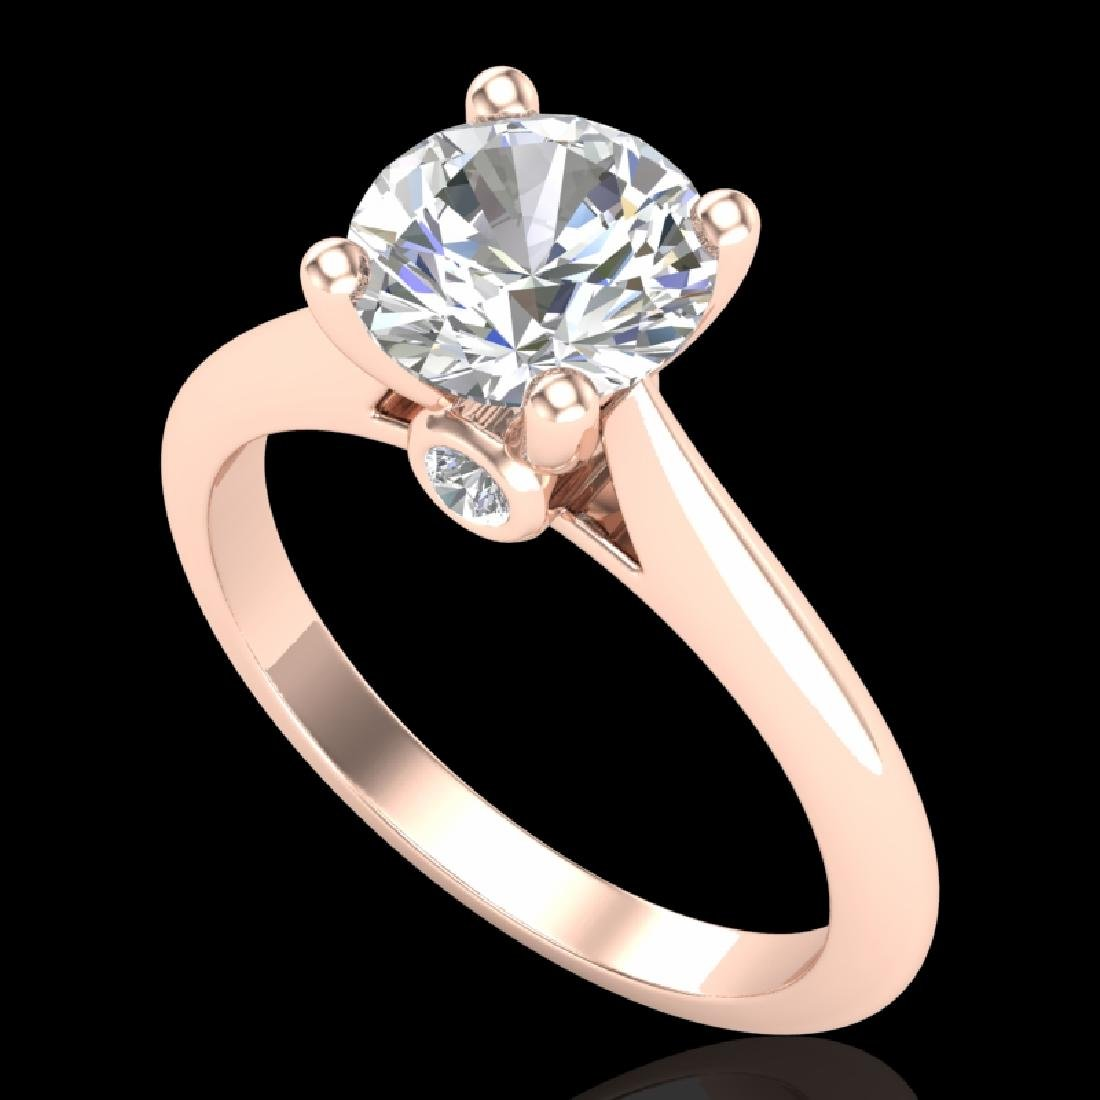 1.6 CTW VS/SI Diamond Art Deco Ring 18K Rose Gold